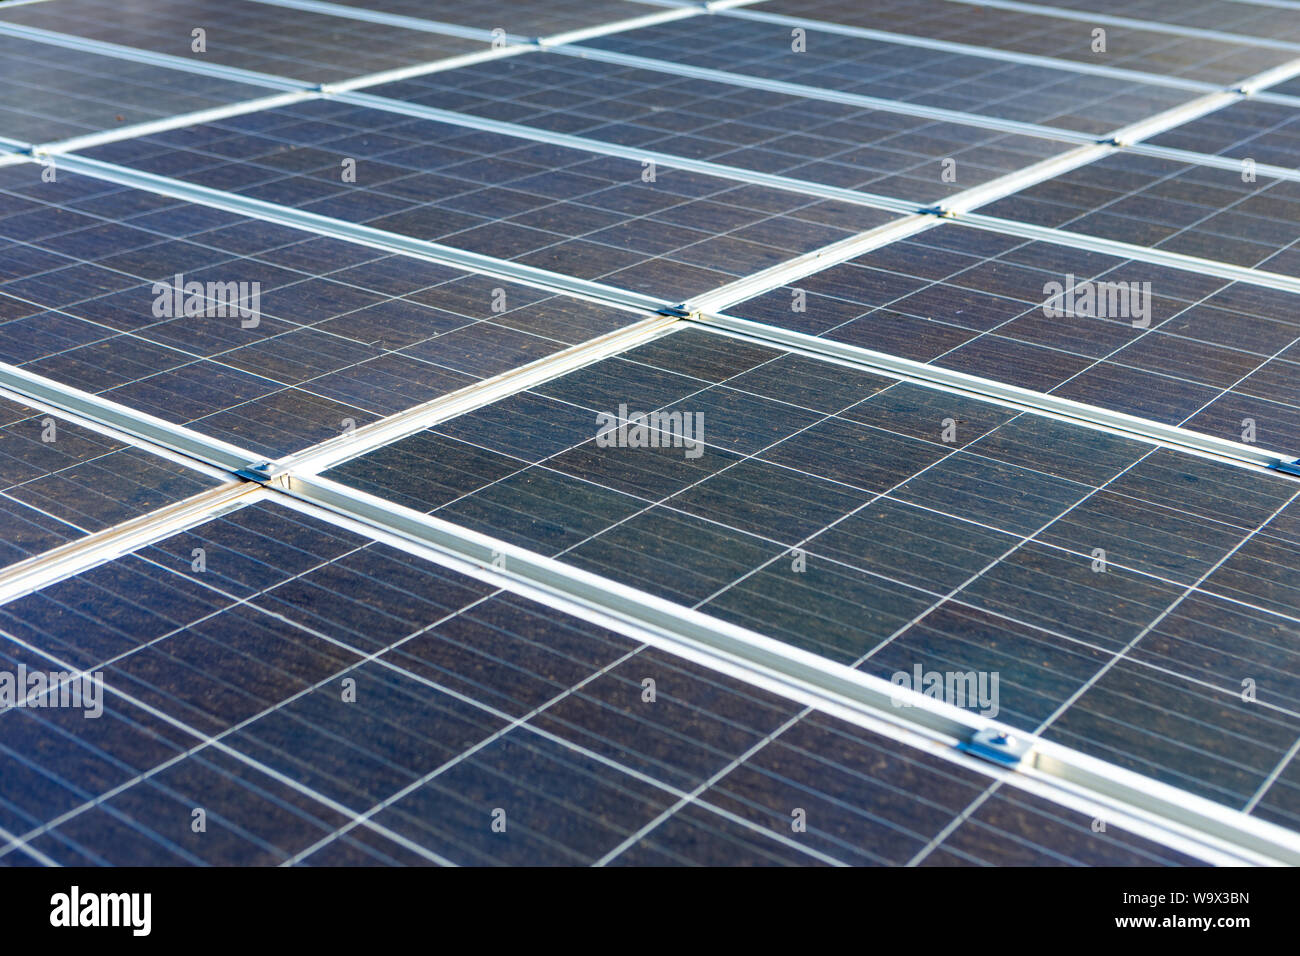 Solar panels generate power in rural houses in the interior of Brazil. Concept of environment conservation, climate change, zero carbon emission, clea Stock Photo